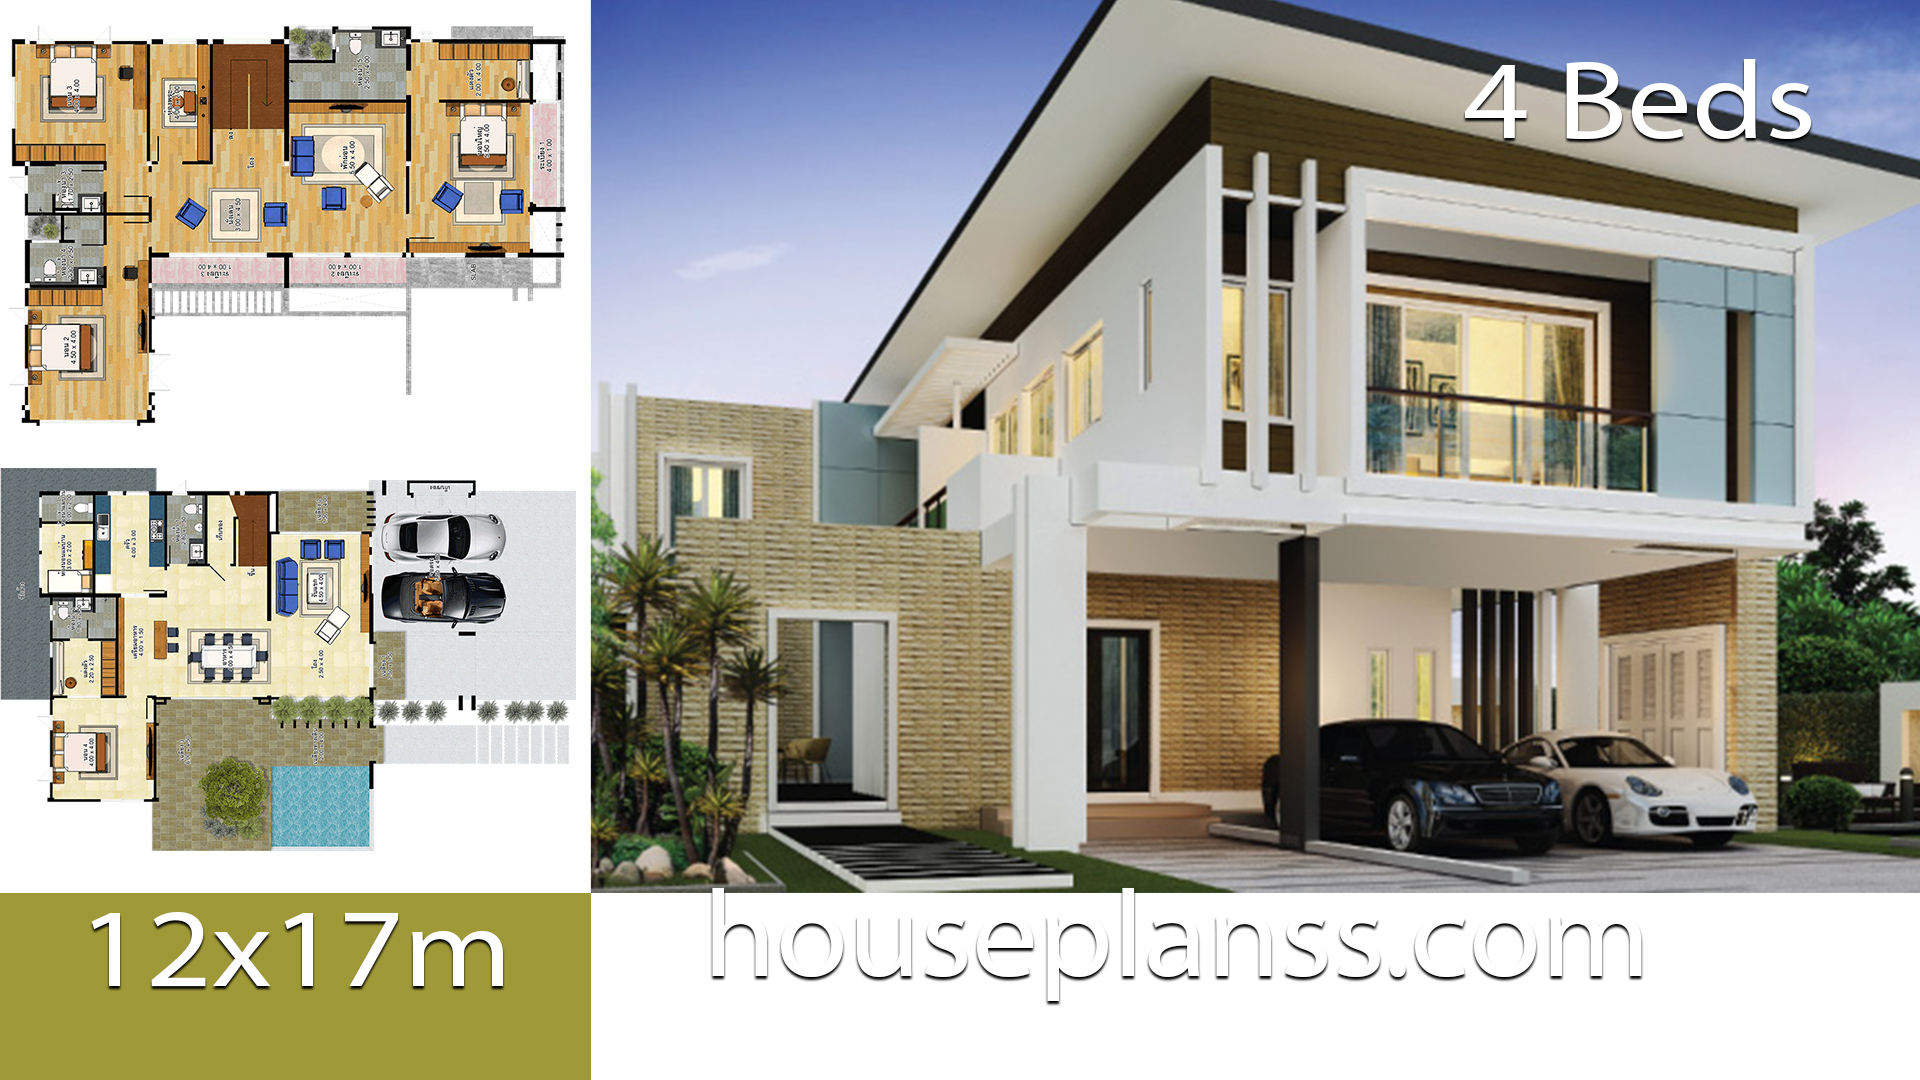 House design idea 12×17 with 4 bedrooms